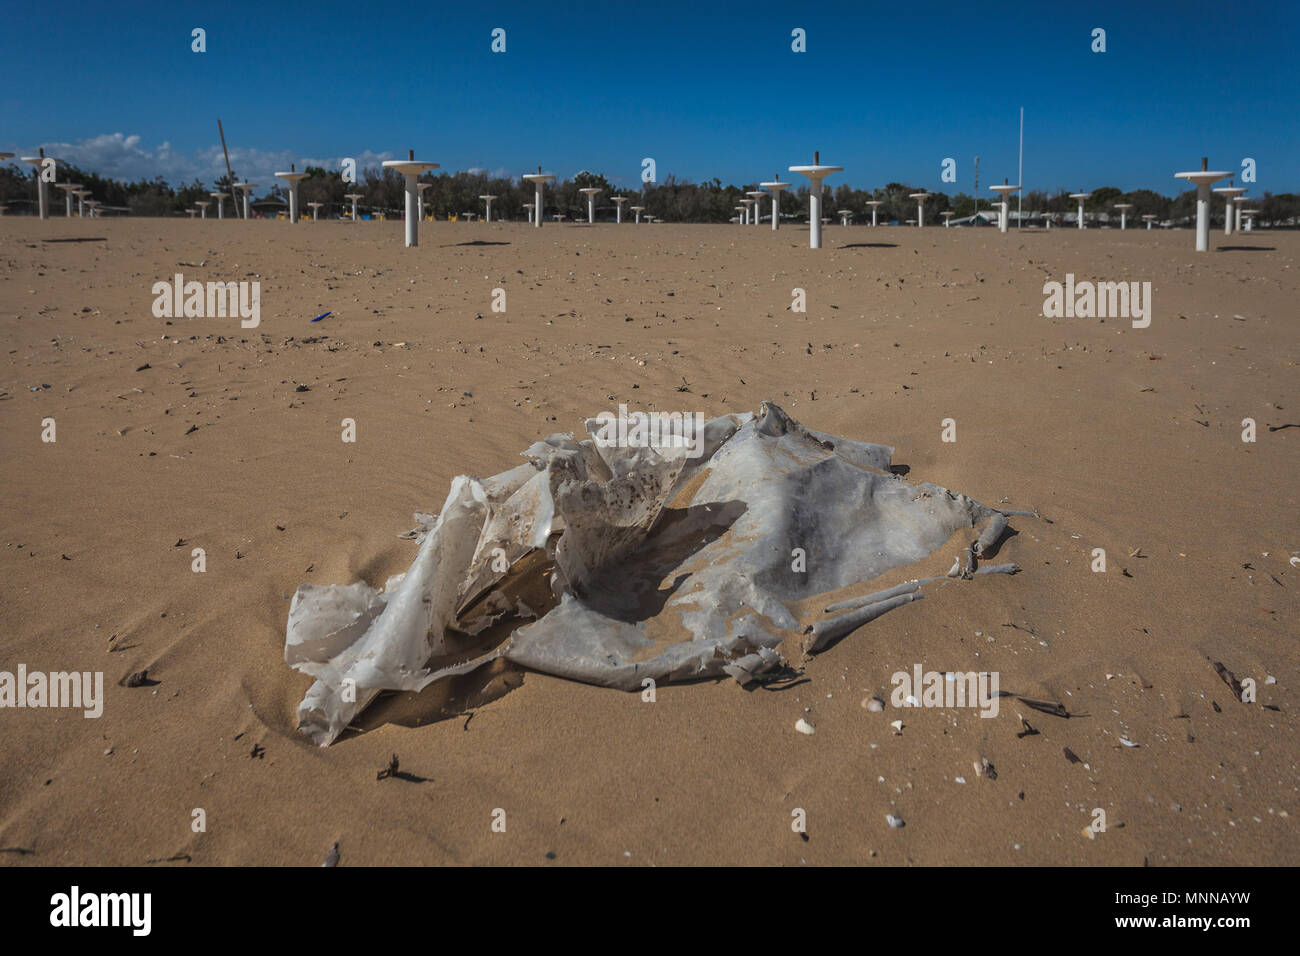 Plastic carried by the sea waves on the beach, Bibione, Veneto, Italy - Stock Image